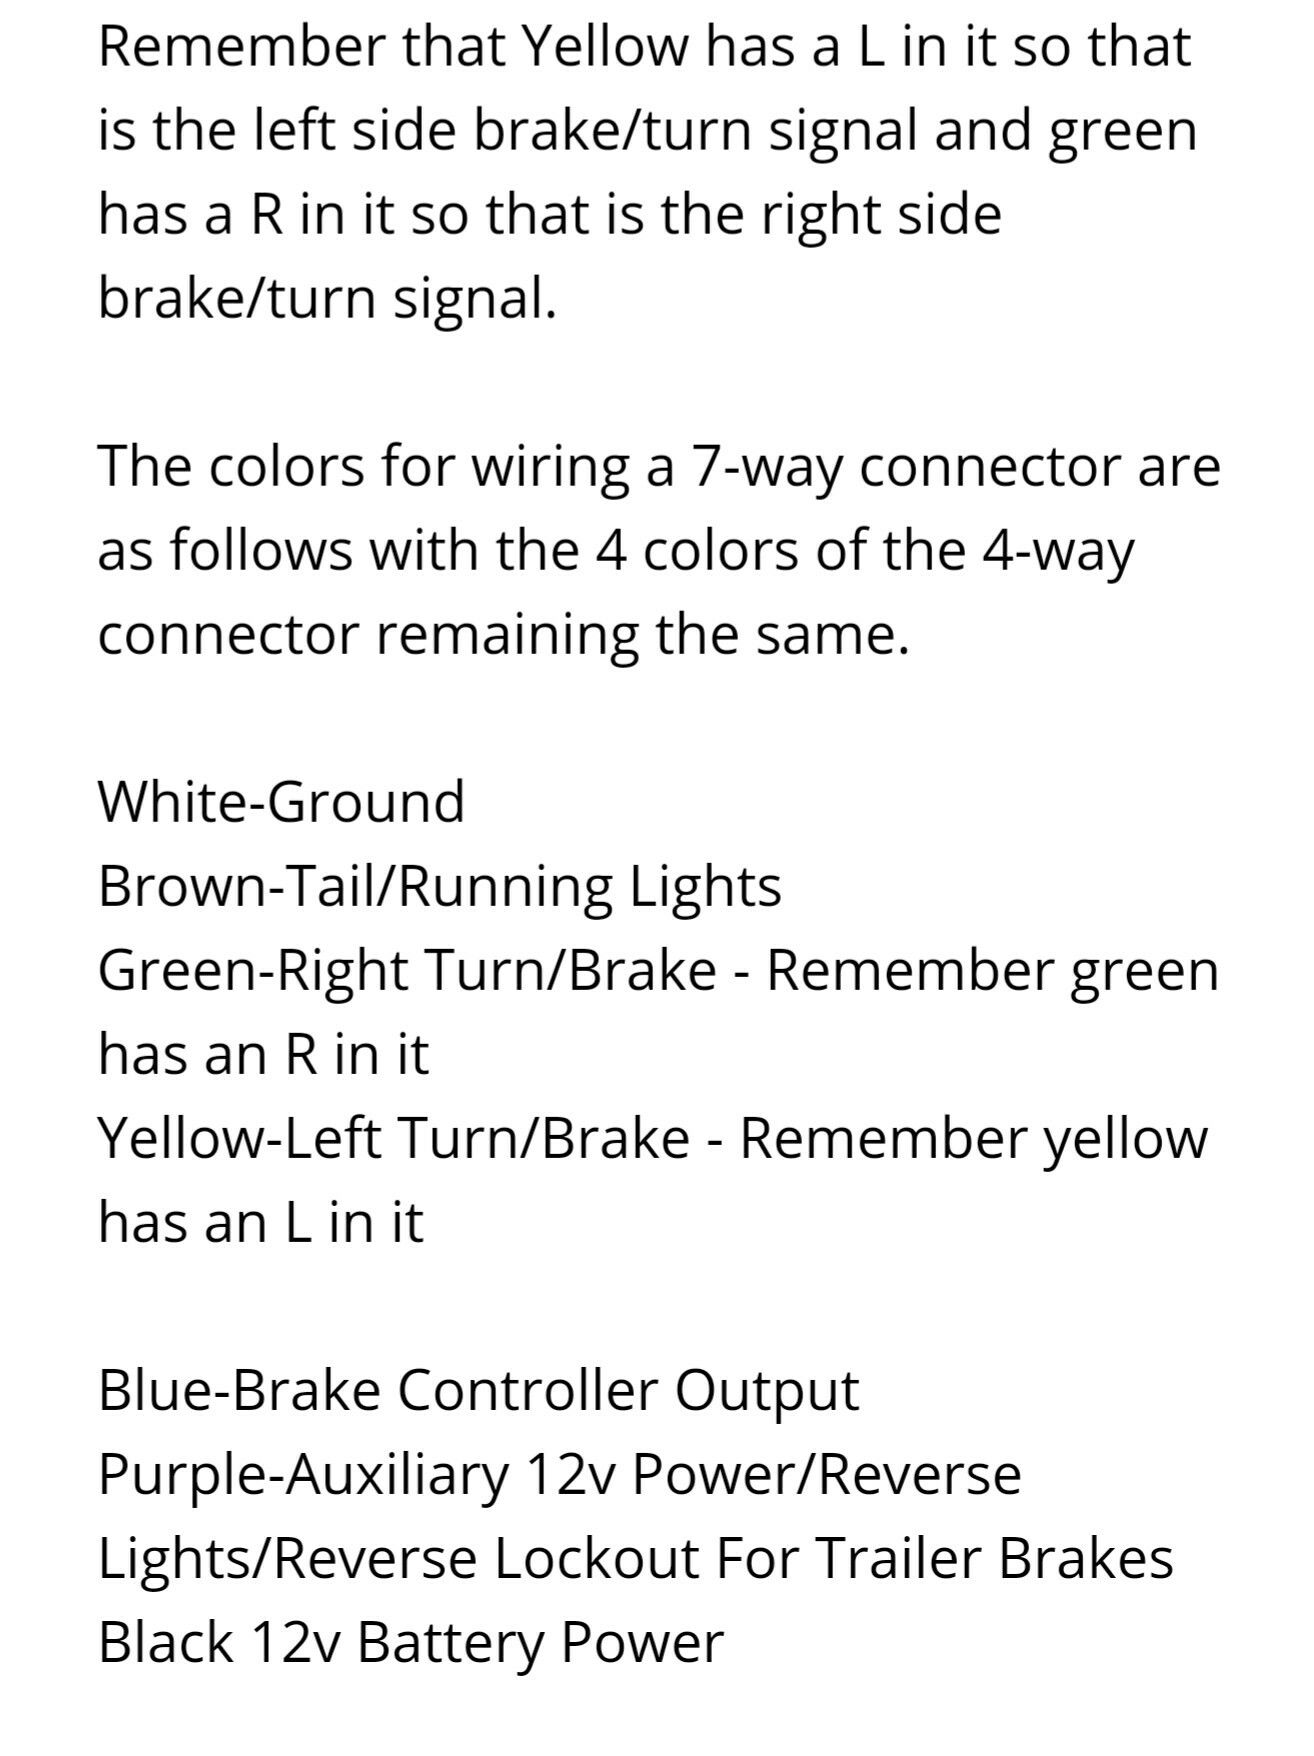 Color code for trailer wires | Agricultural Science | Pinterest ...